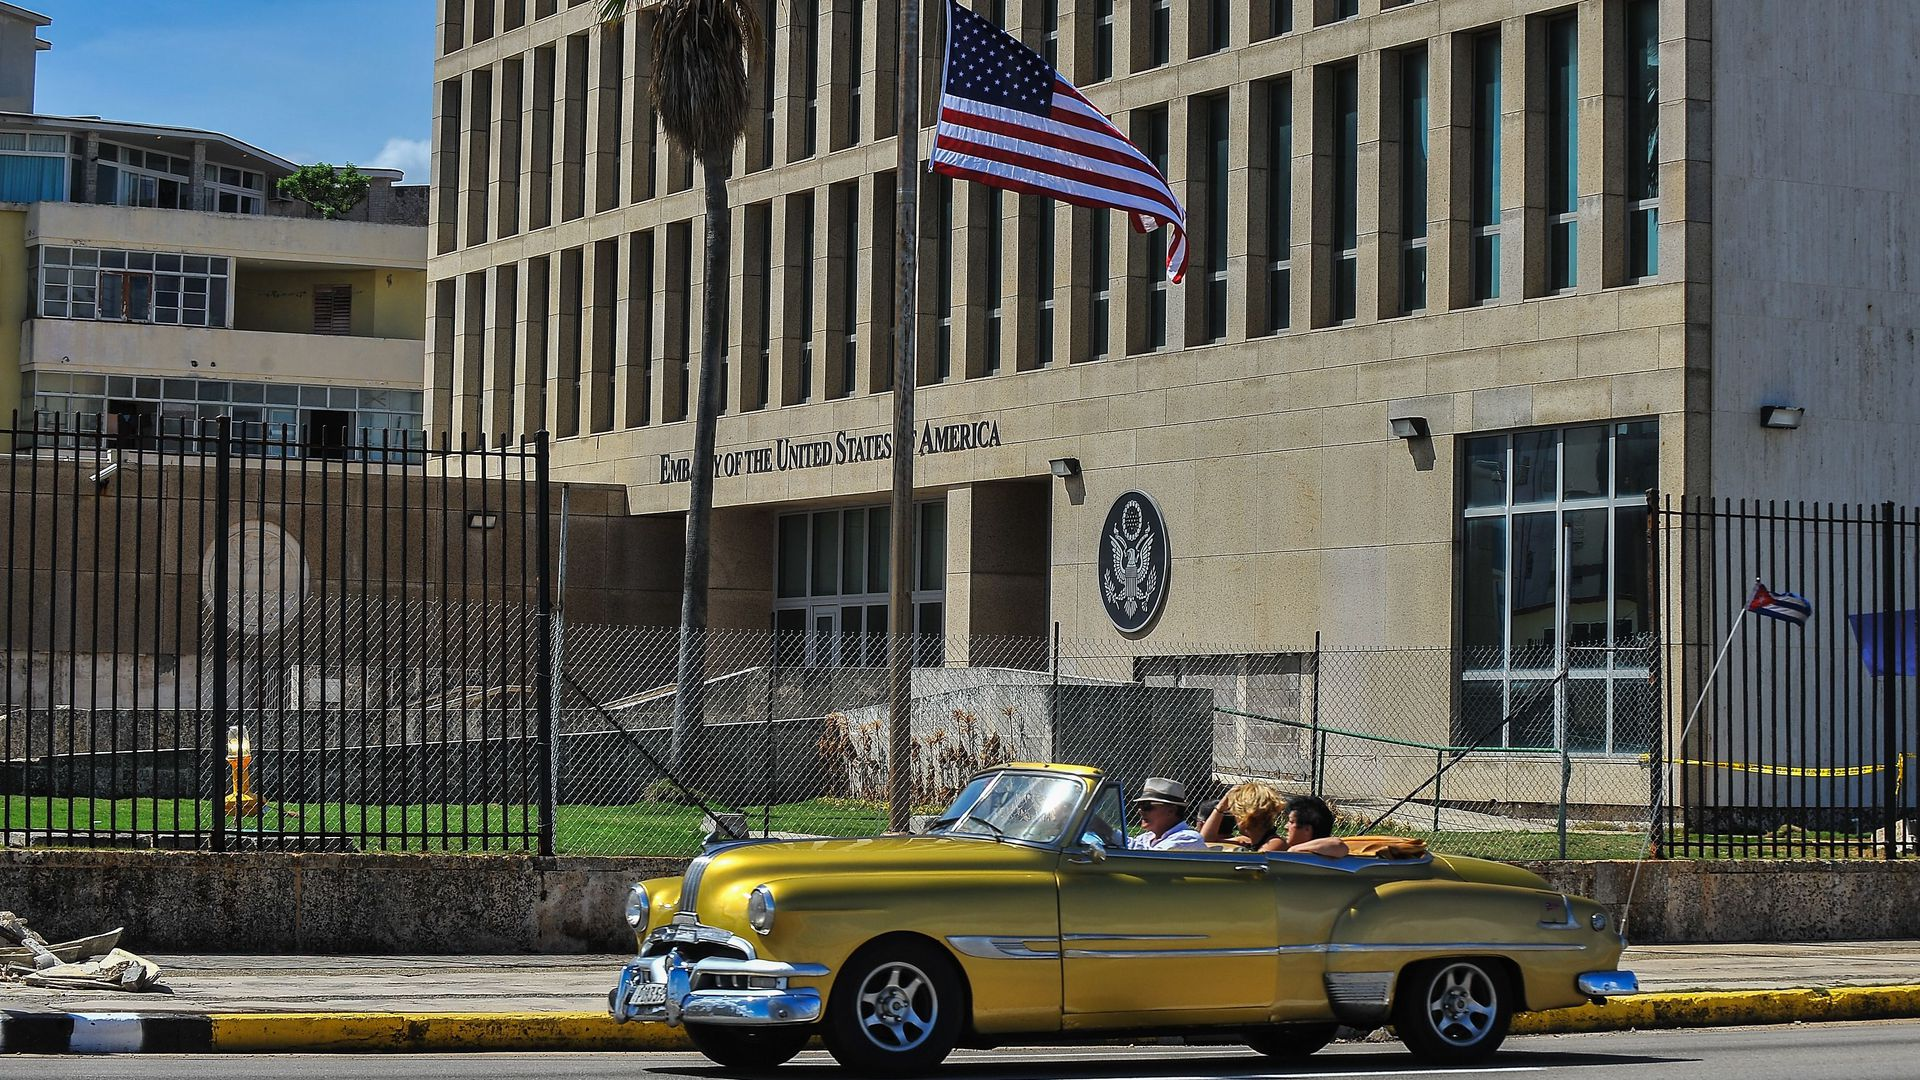 A classic car drives past the U.S. Embassy in Havana